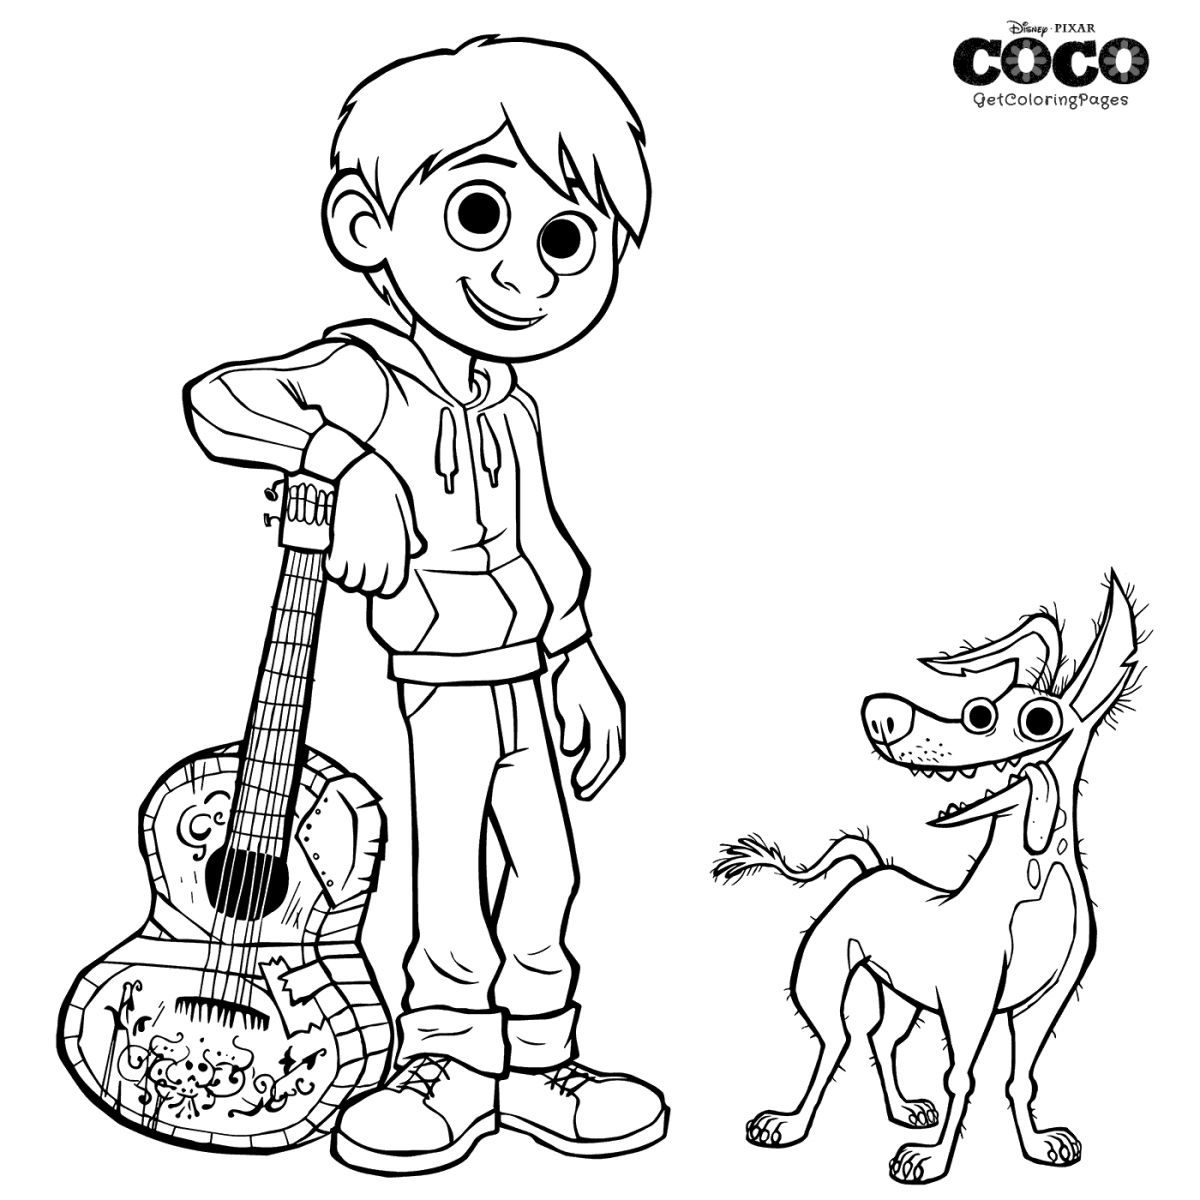 Dante And Miguel Coco Coloring Page  Disney coloring pages